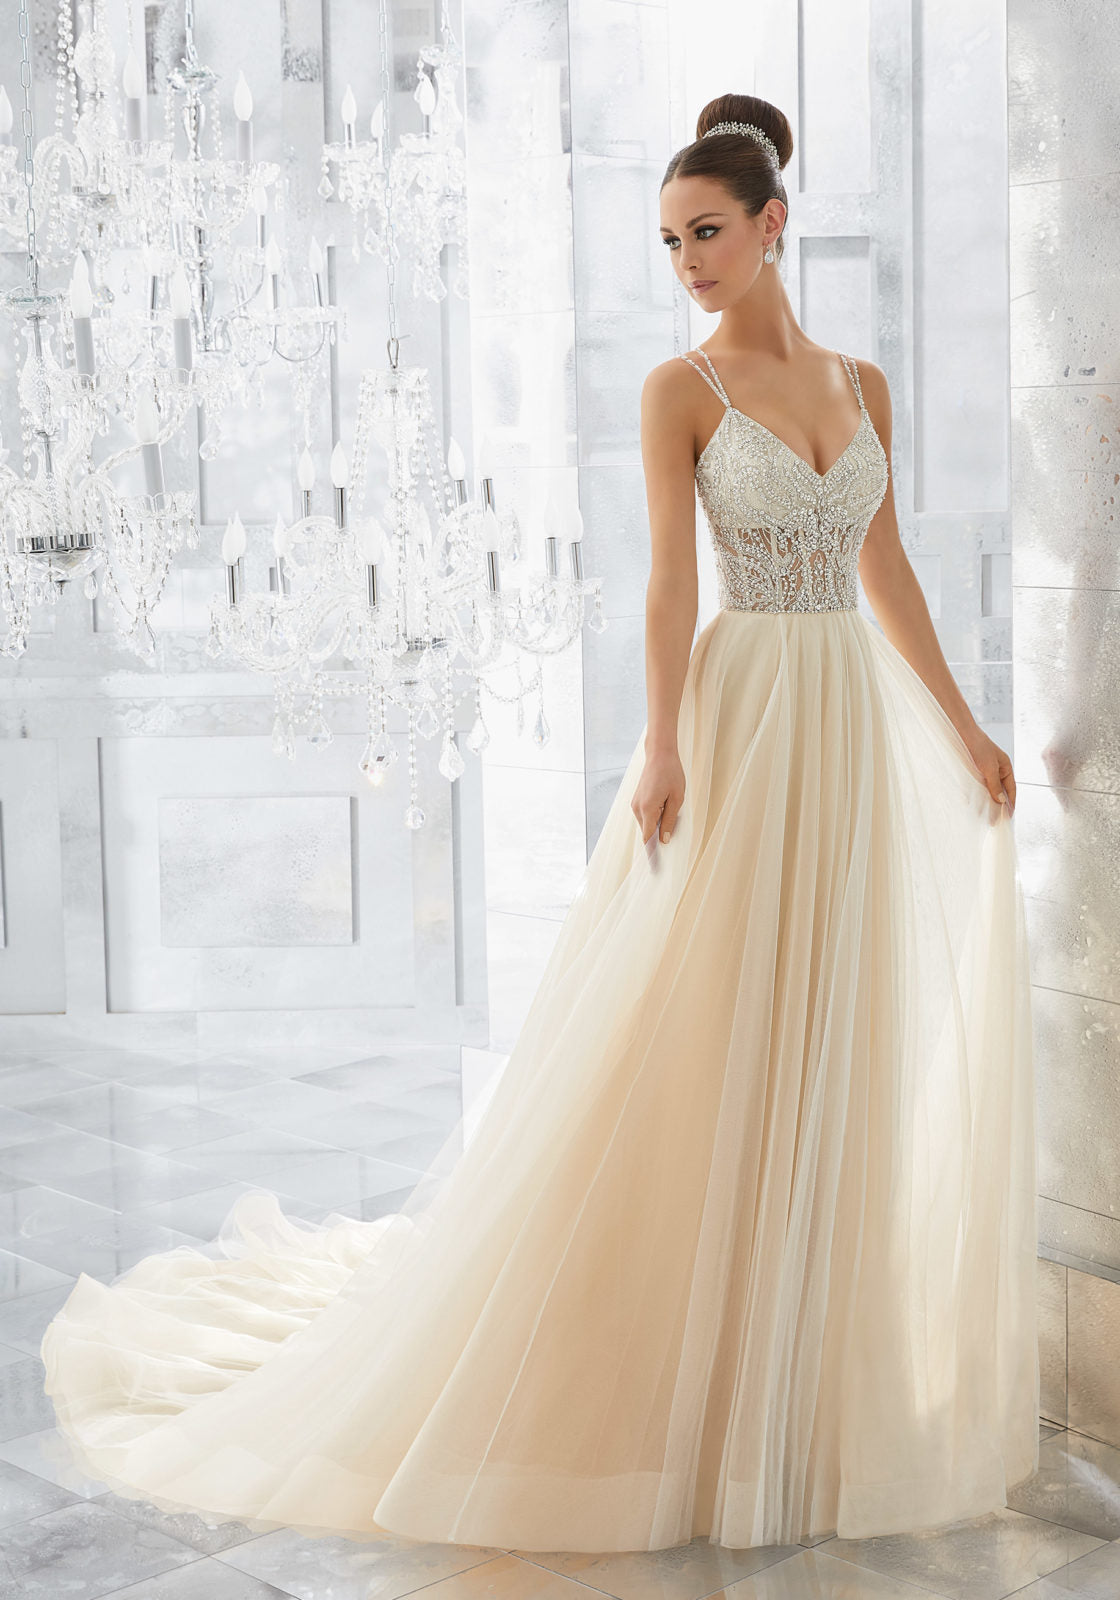 #C5013 - Concepcion Bridal & Quinceañera Boutique